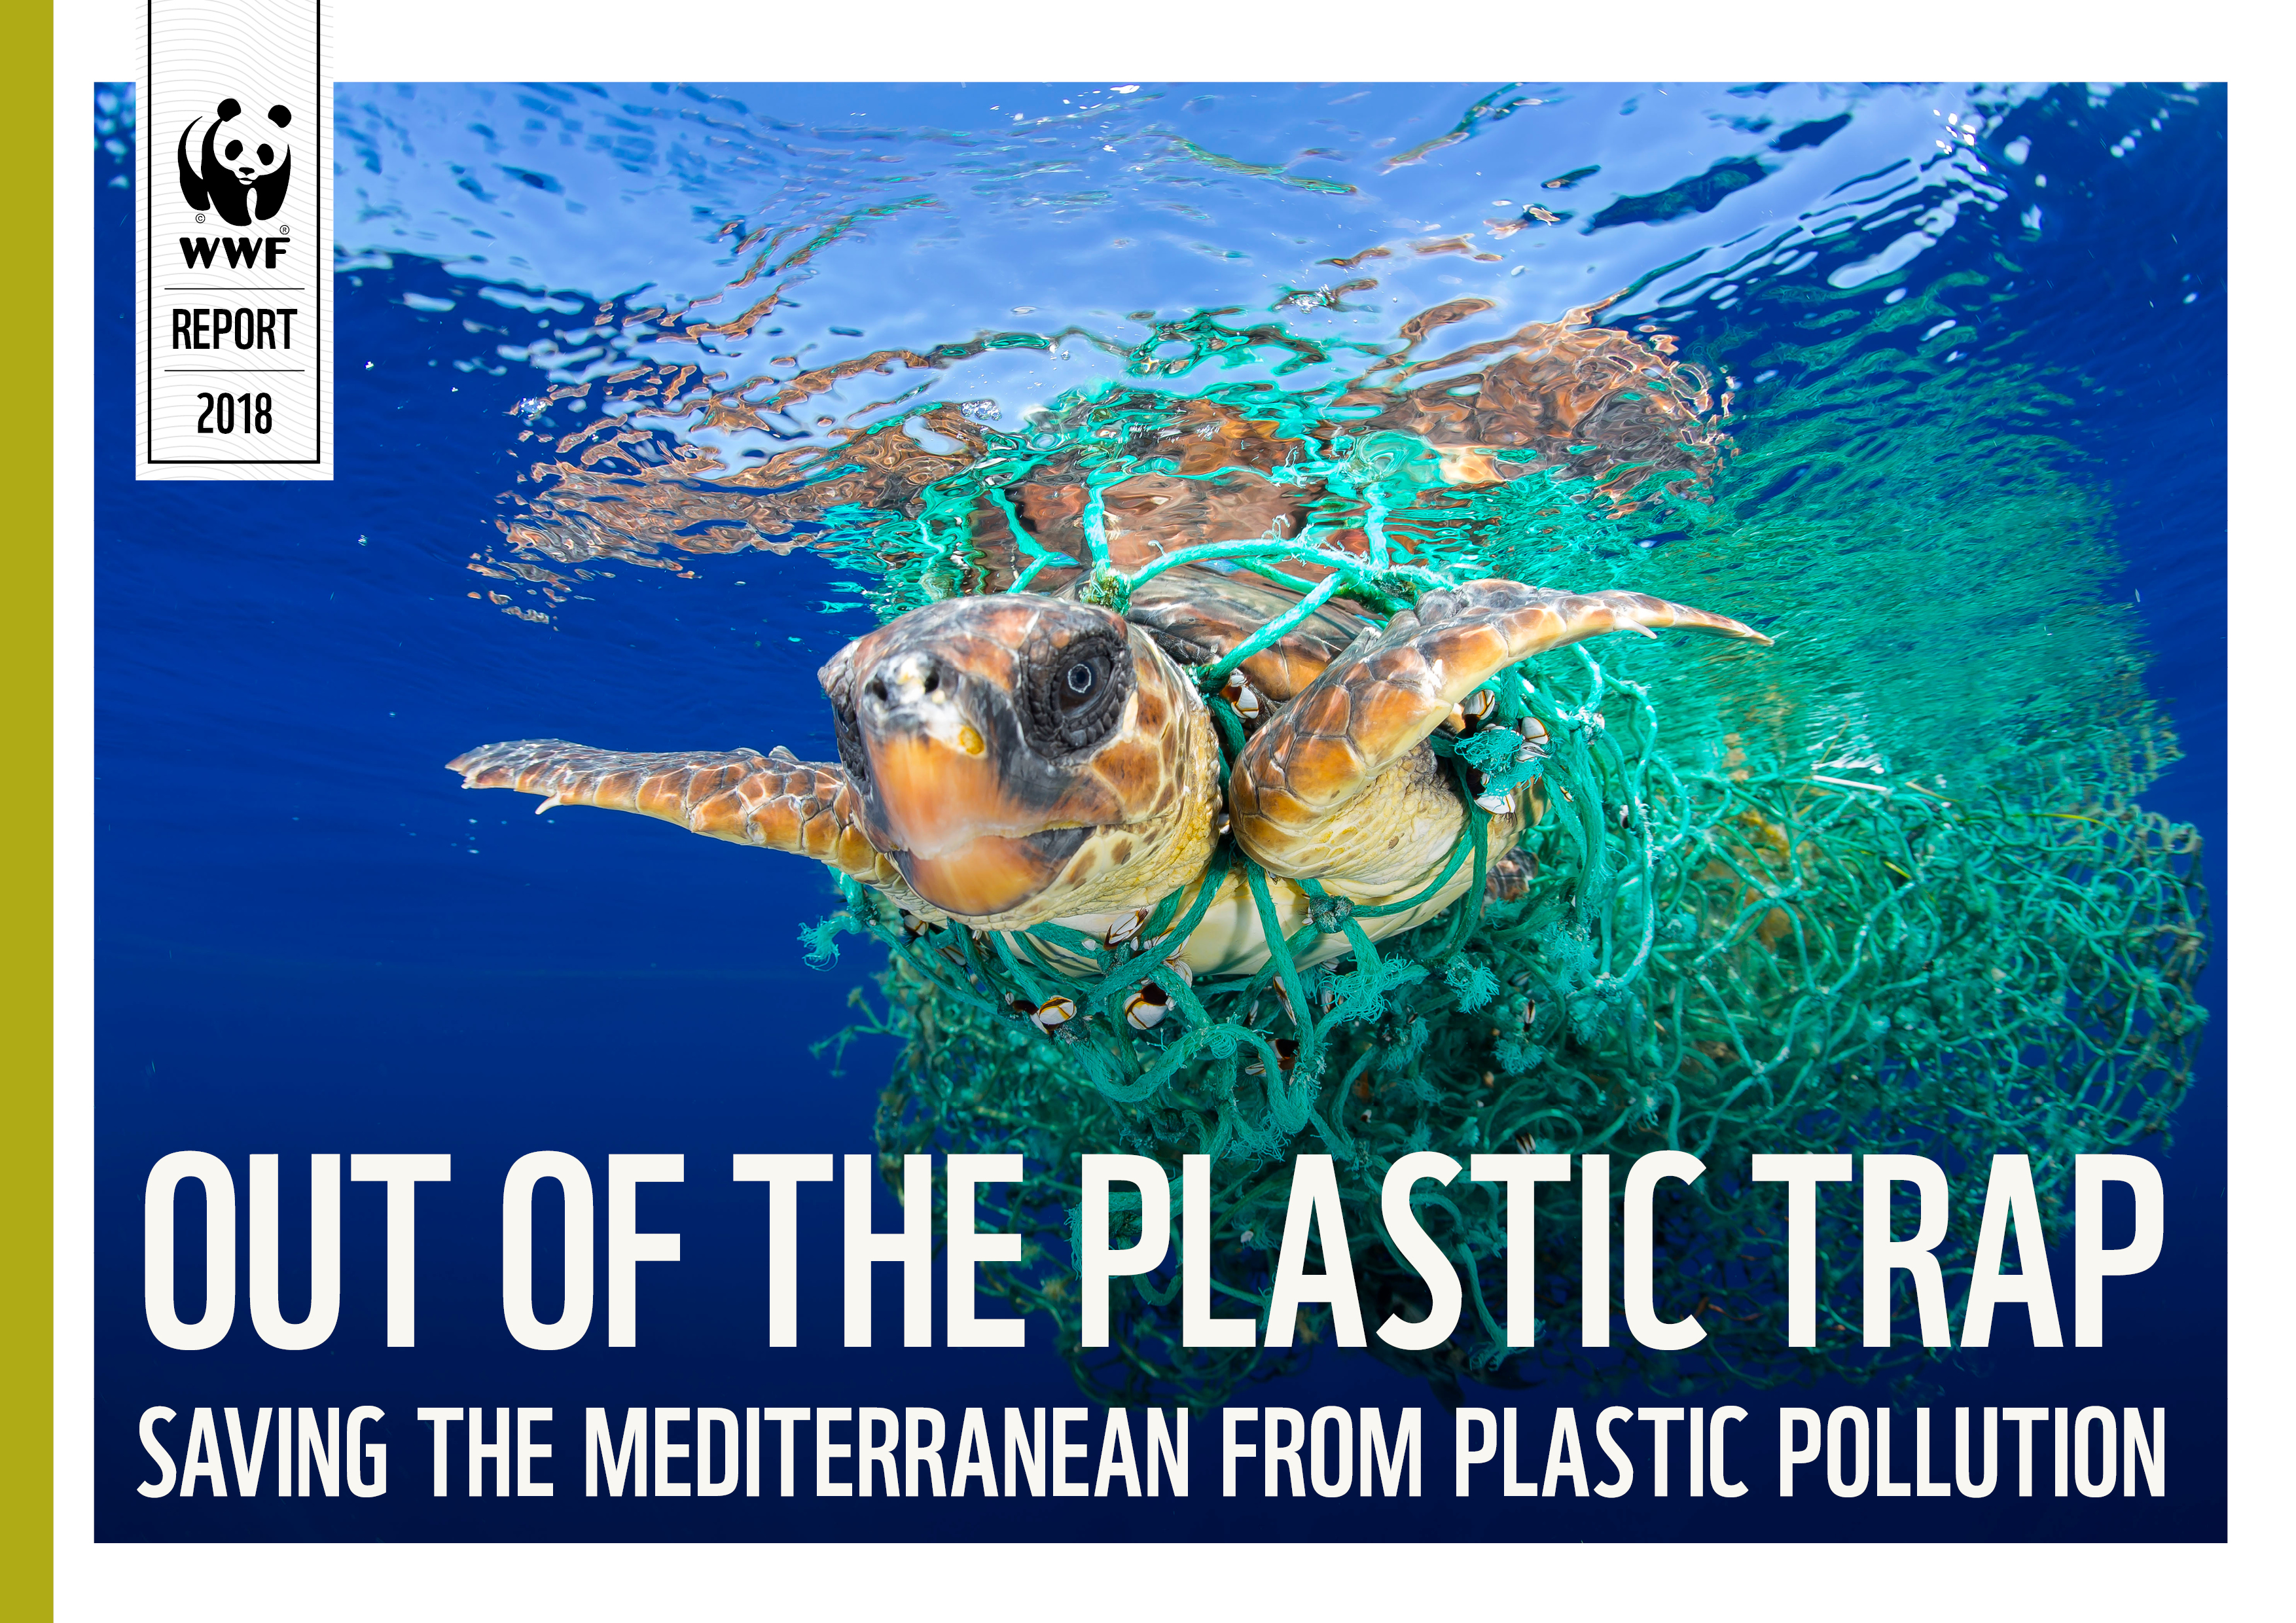 The Mediterranean at risk of becoming 'a sea of plastic